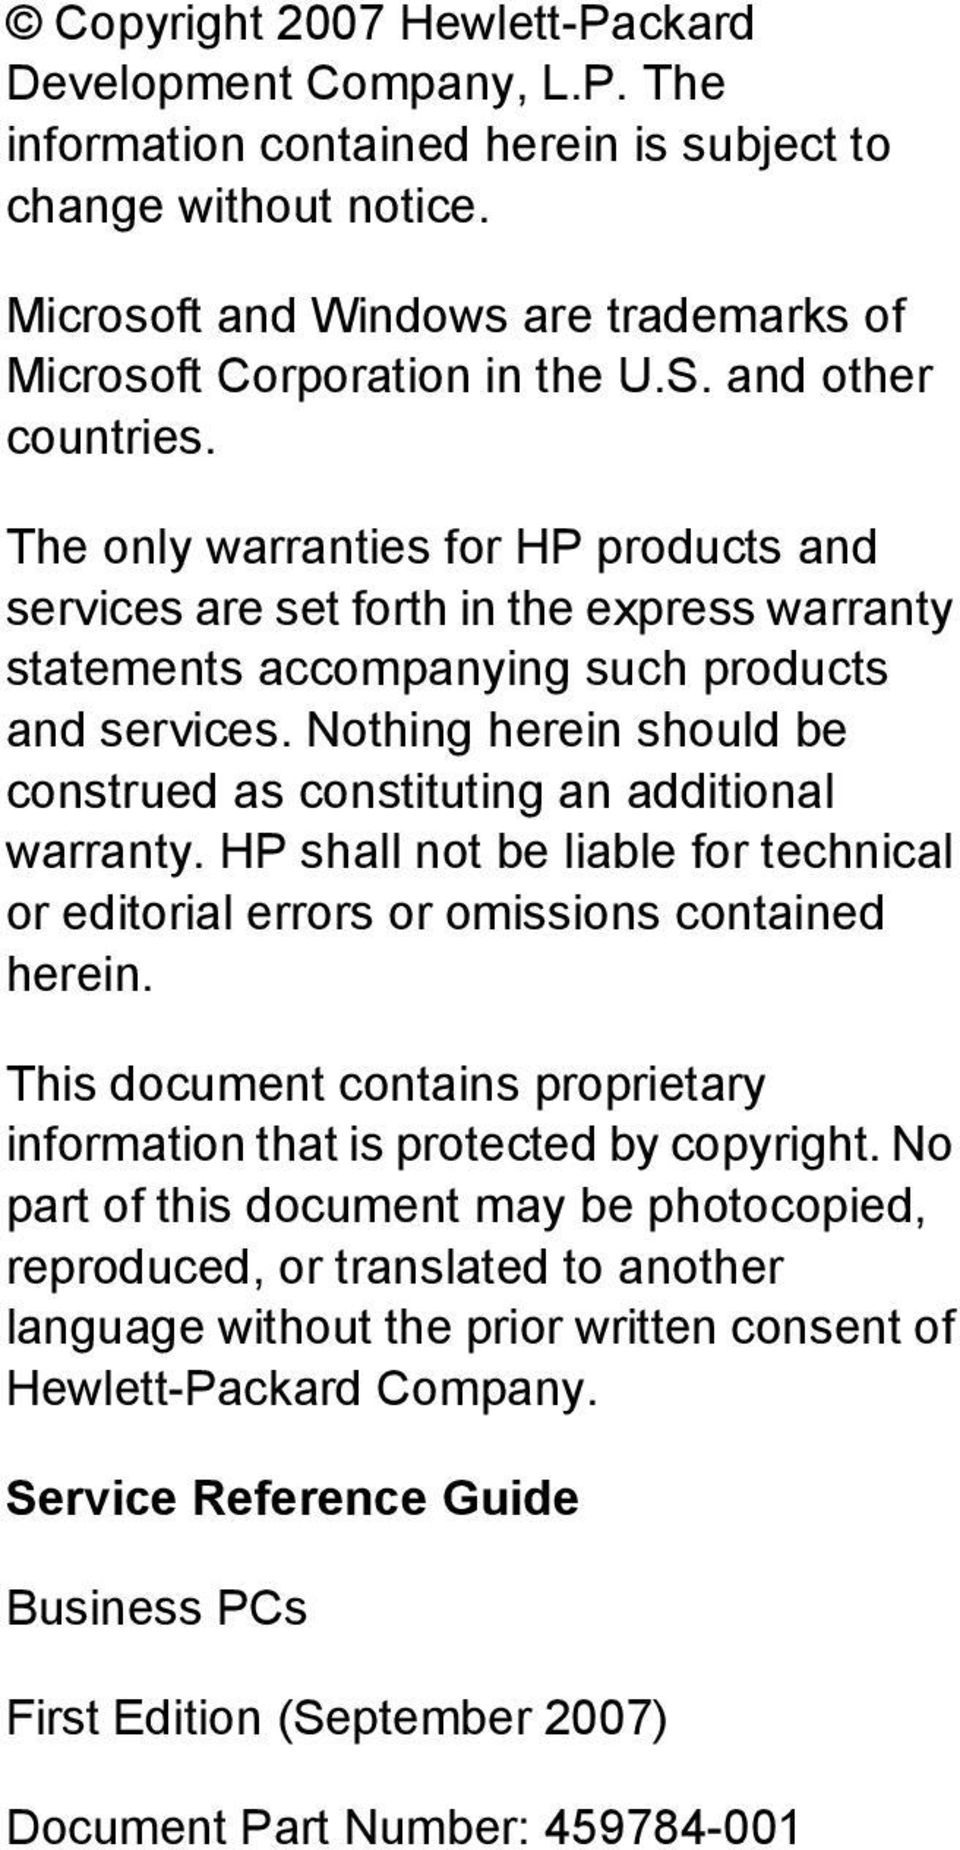 Service Reference Guide HP Compaq dc7800 Business PC - PDF